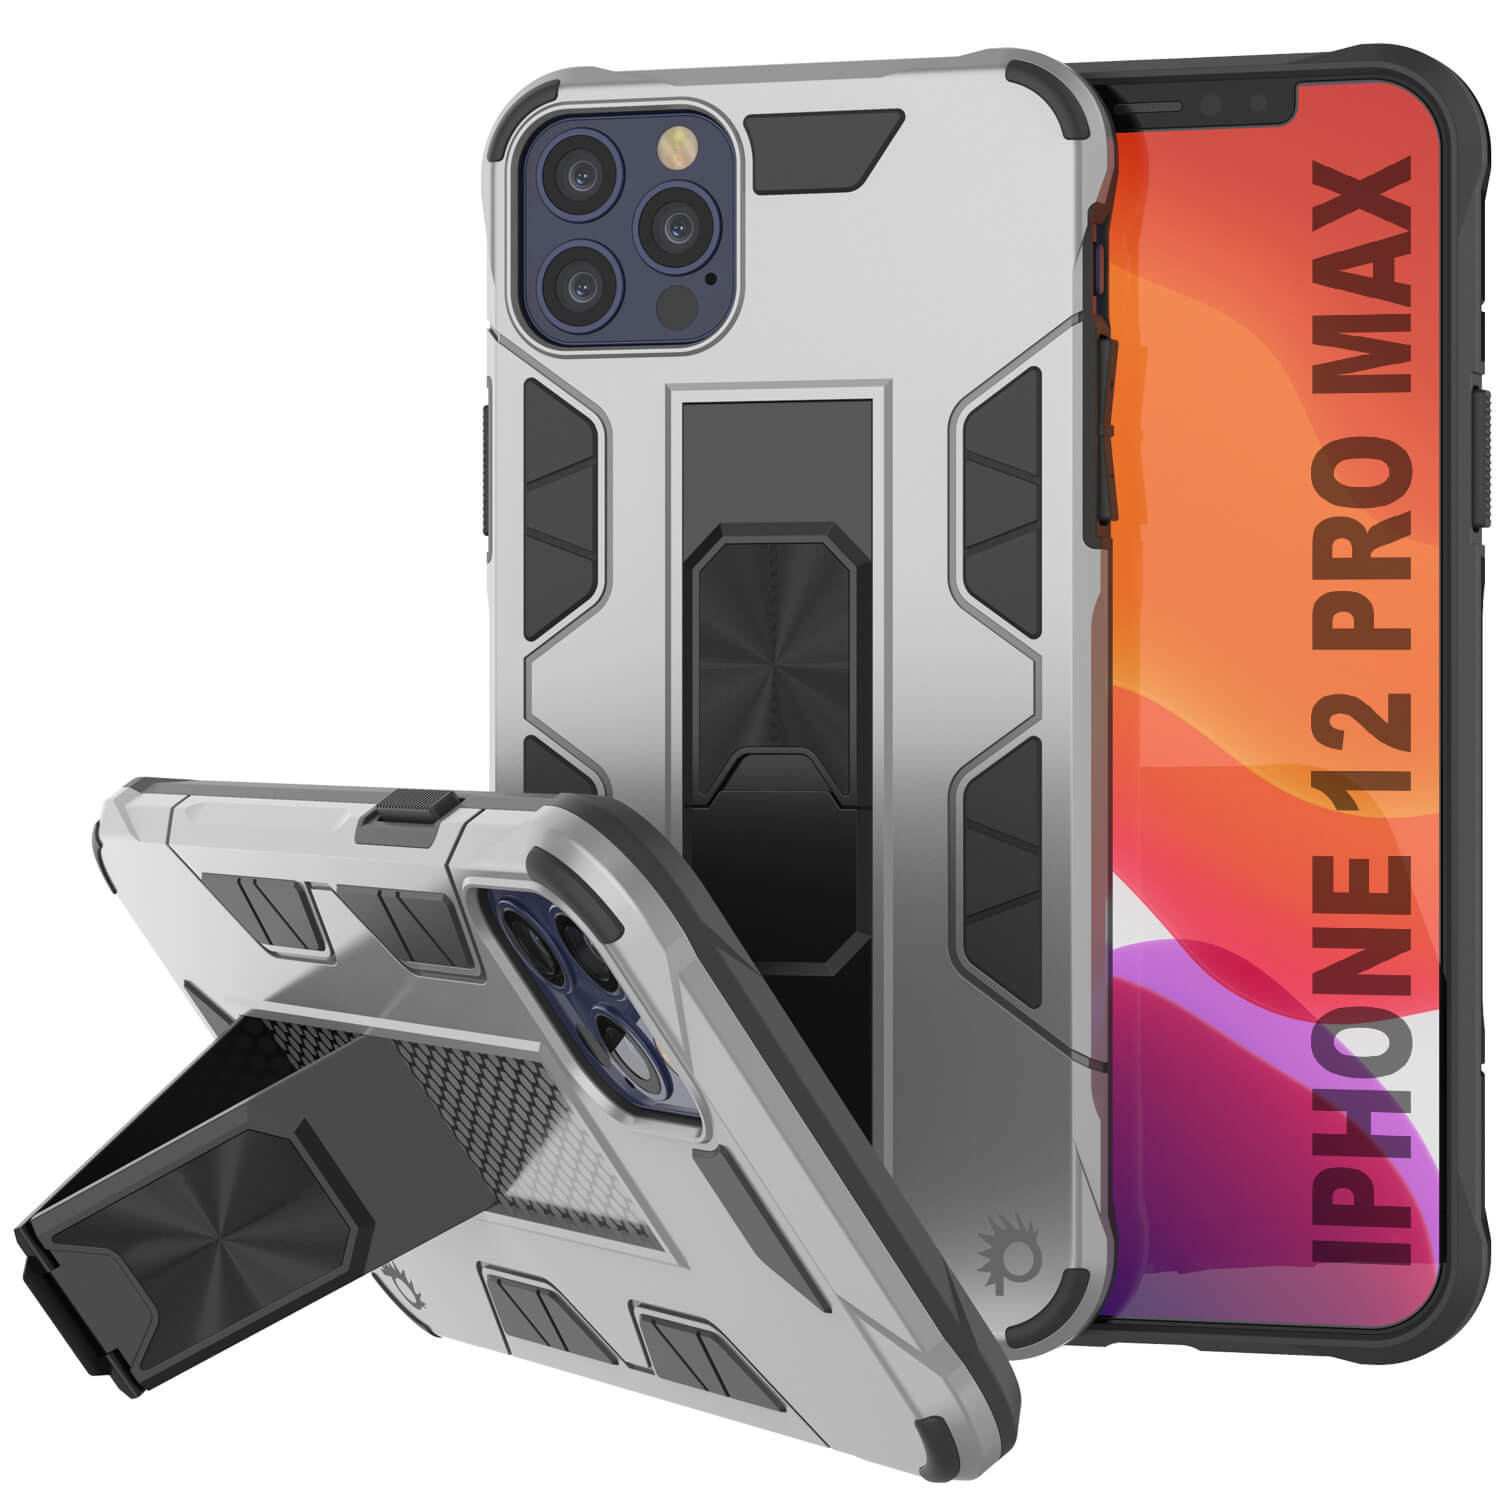 Punkcase iPhone 12 Pro Max Case [ArmorShield Series] Military Style Protective Dual Layer Case Silver